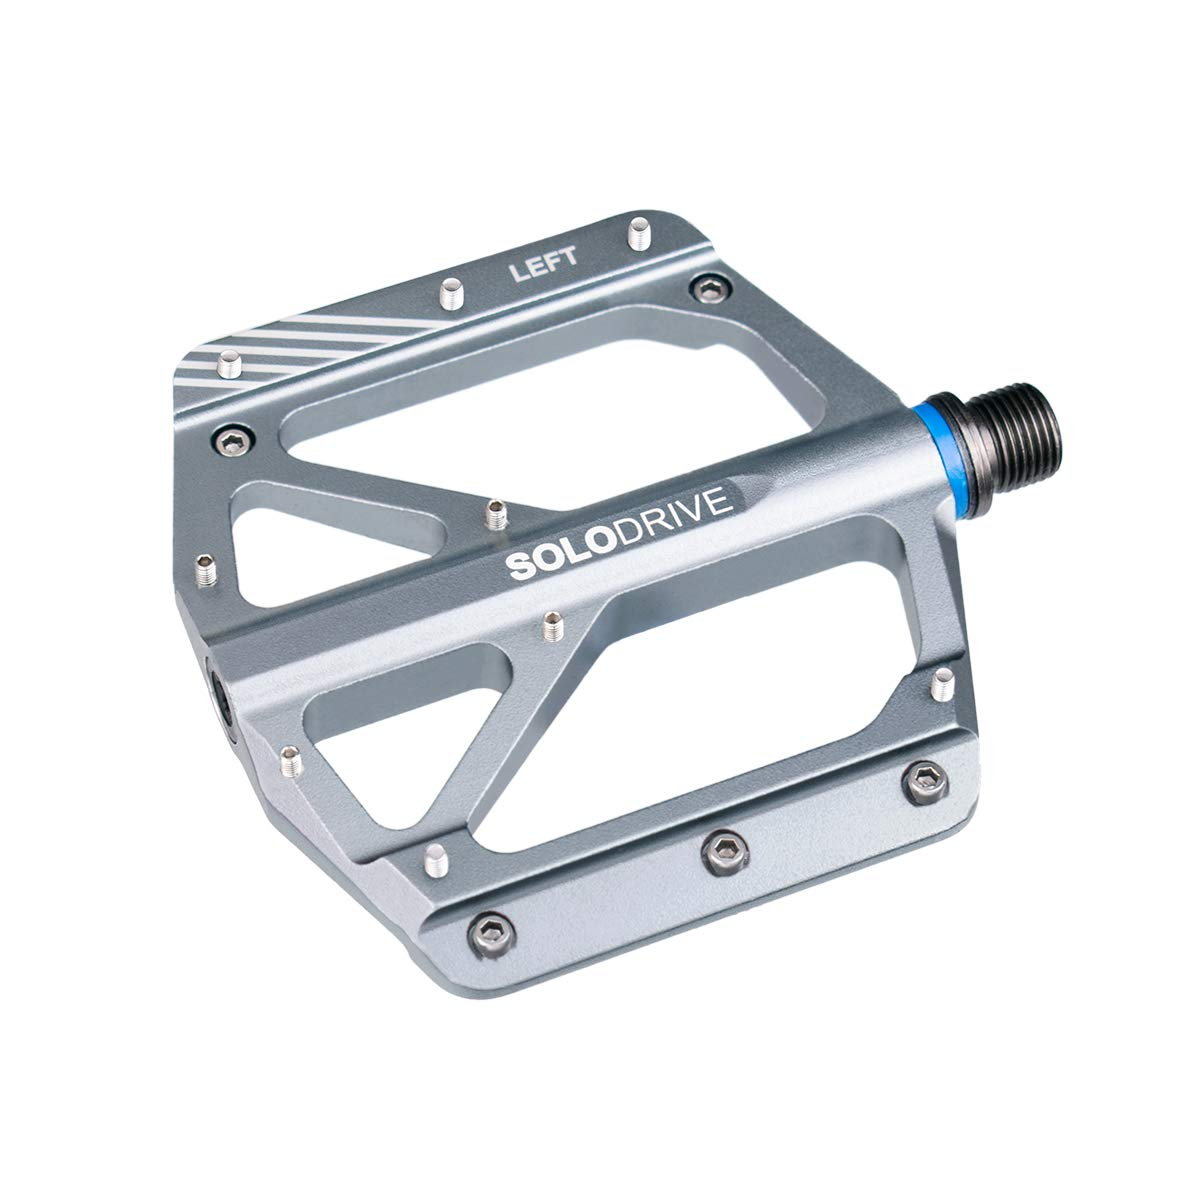 SOLODRIVE Mountain Bike Flat Pedals, Low-Profile Aluminium Alloy Bicycle Pedals, Light Weight and Thin Platform(Gray)